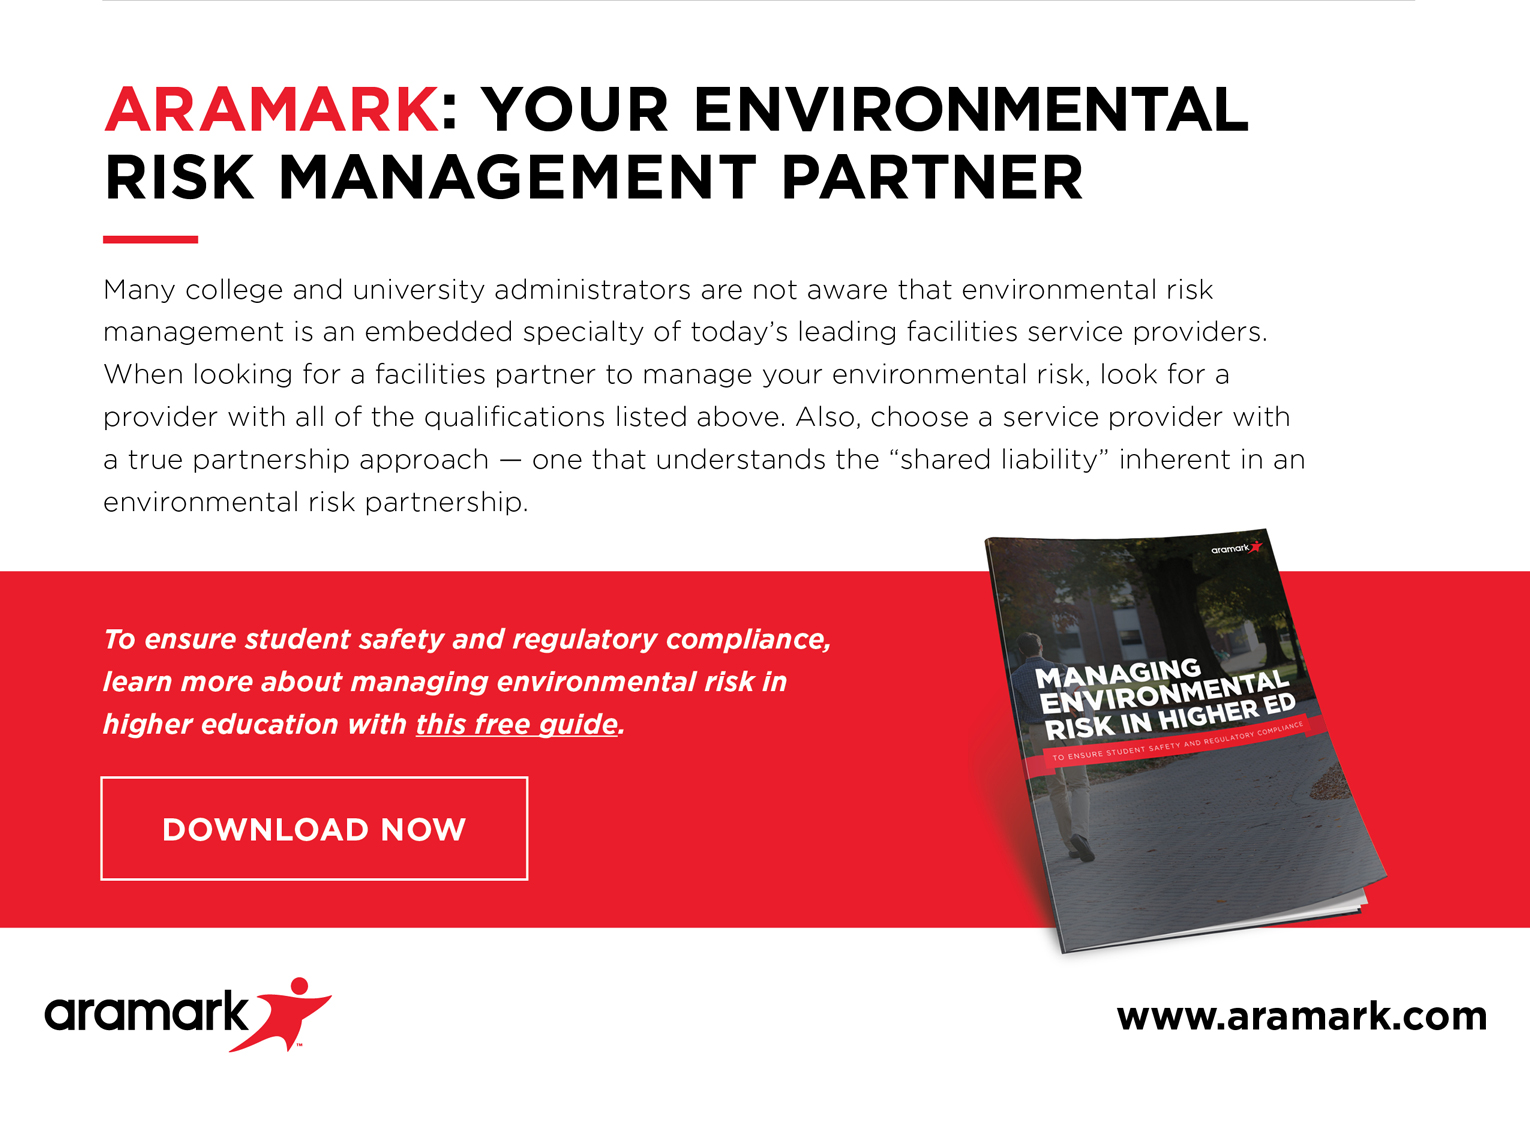 Managing-Environmental-Risk_02